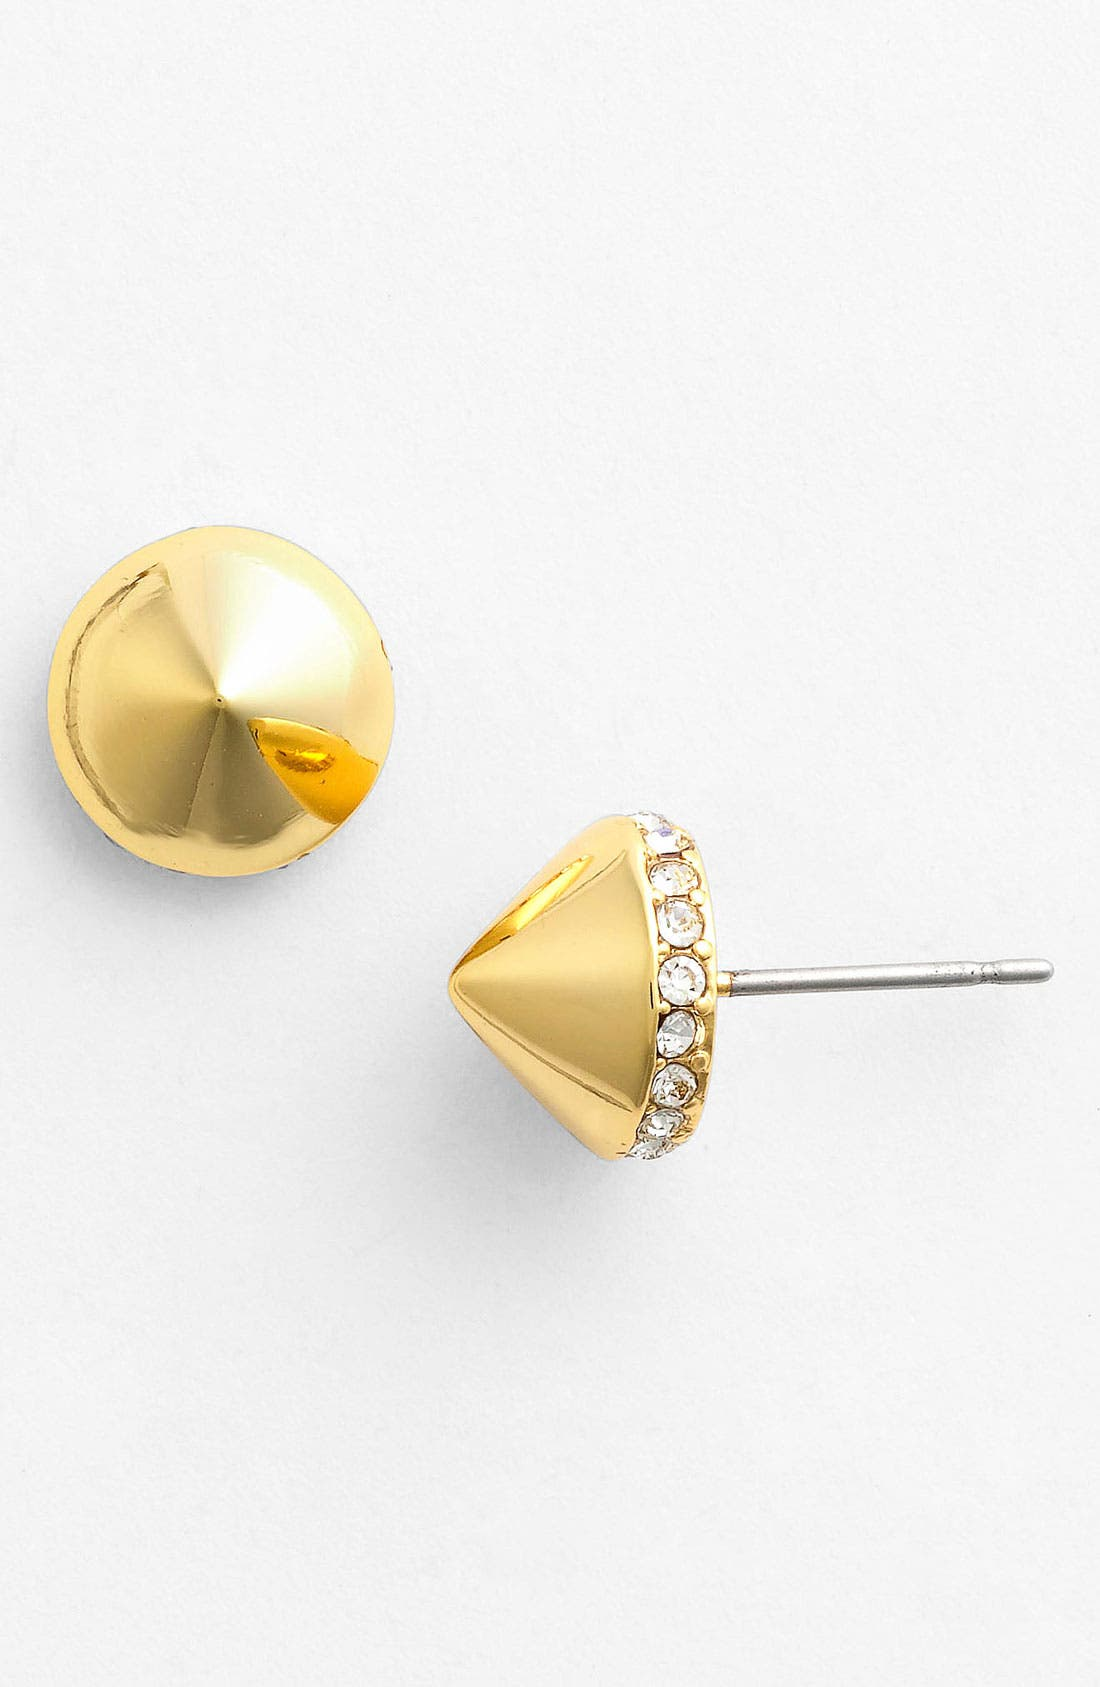 Main Image - Vince Camuto 'Lucia' Pavé Cone Stud Earrings